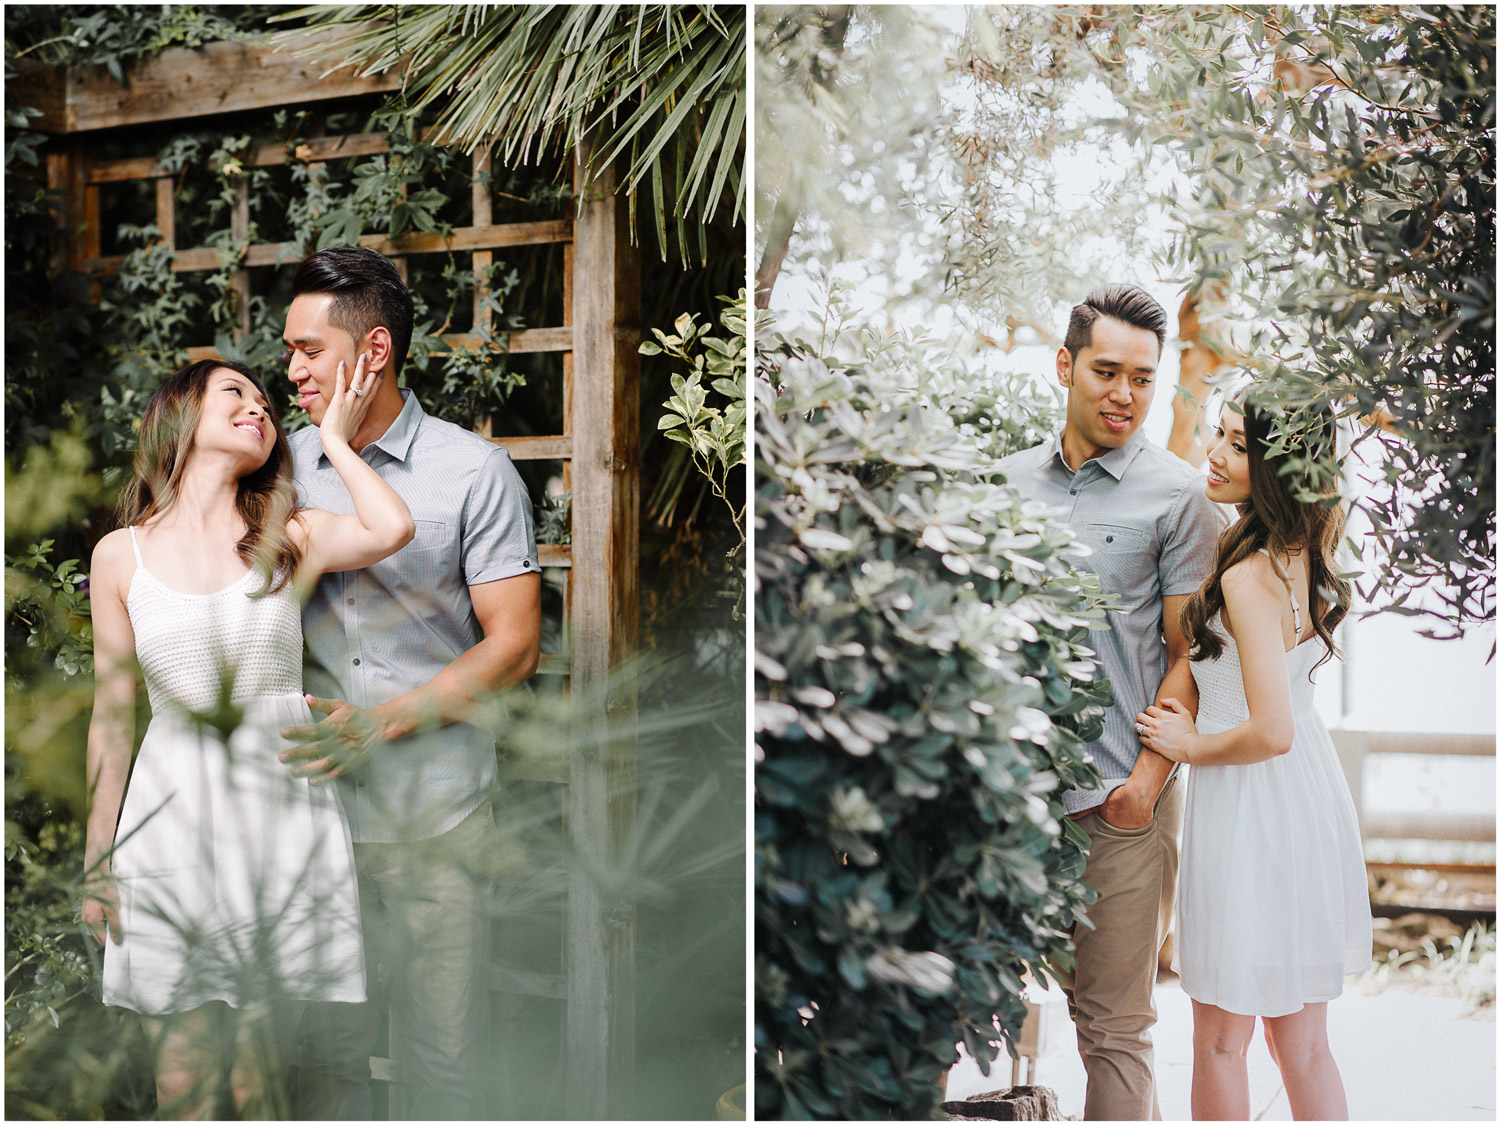 Engagement session in the Mediterranean Gardens at RBG